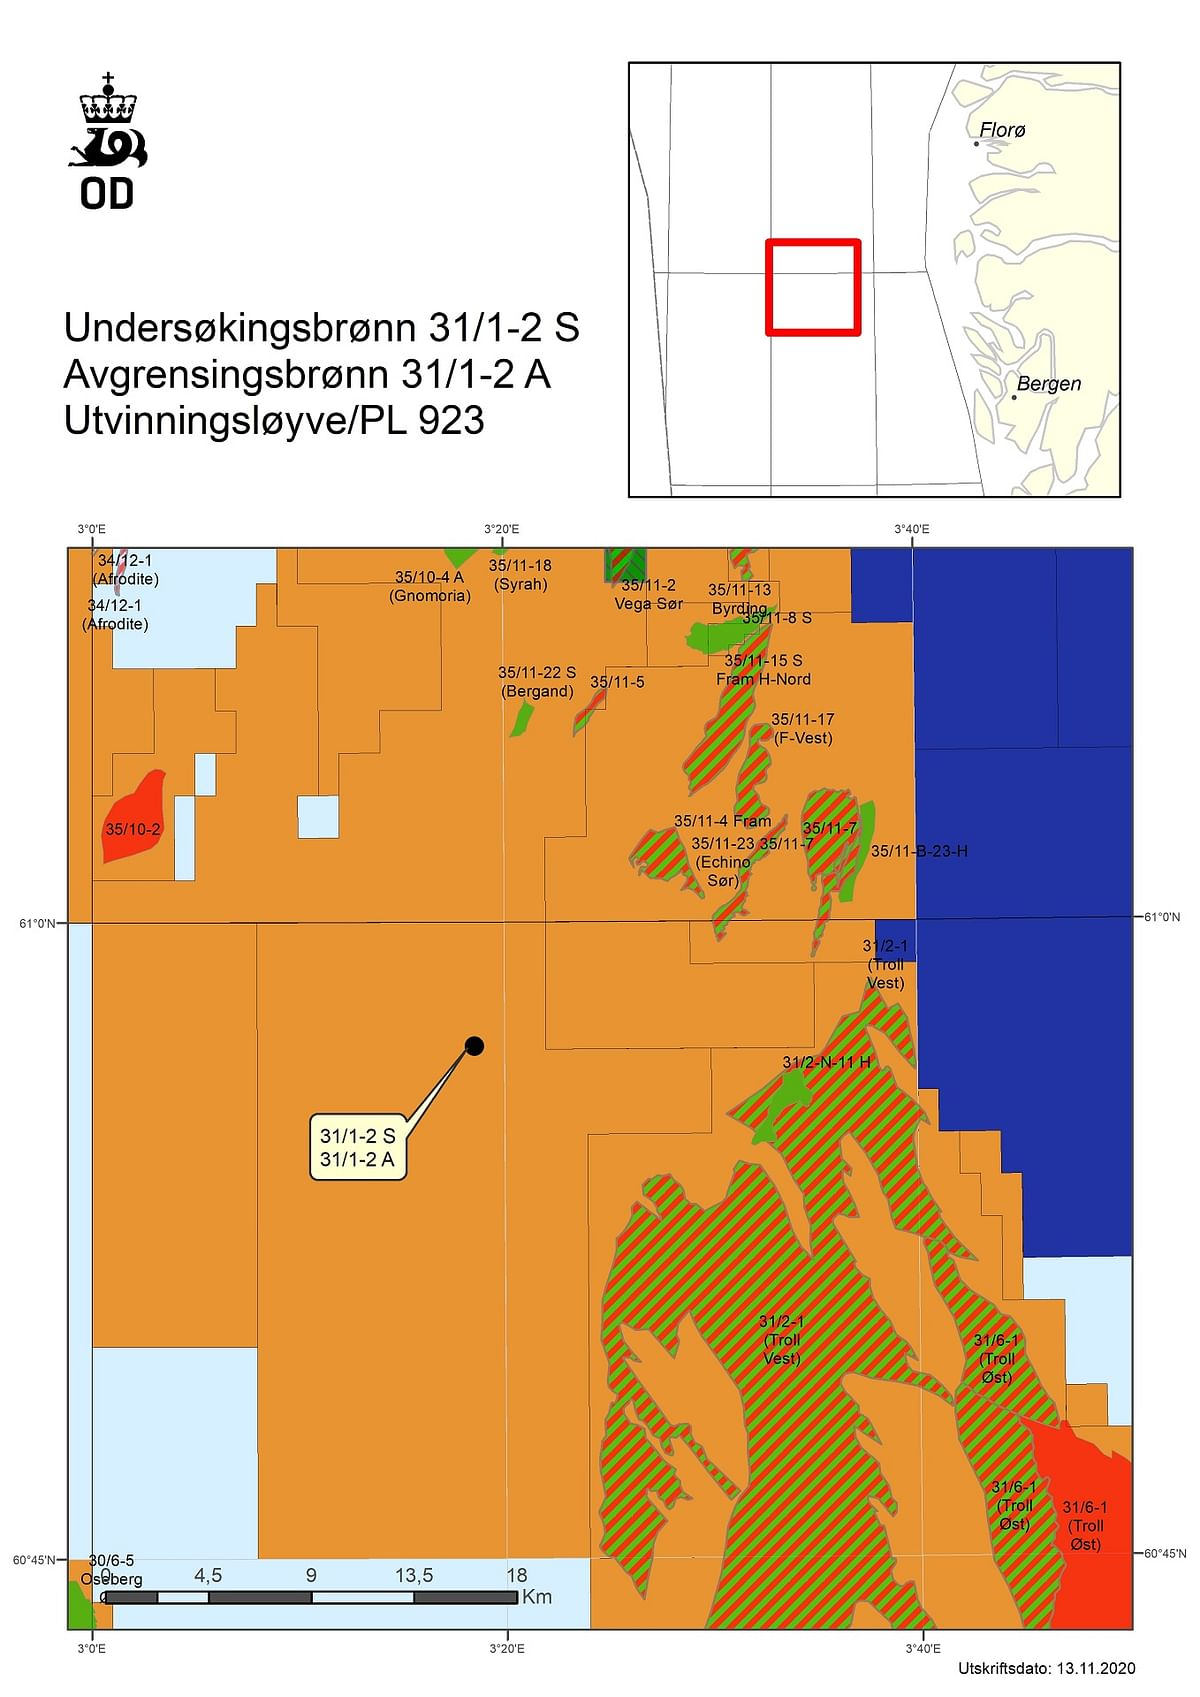 NPD Grants Drilling Permit for Wells in Licence 923 to Equinor